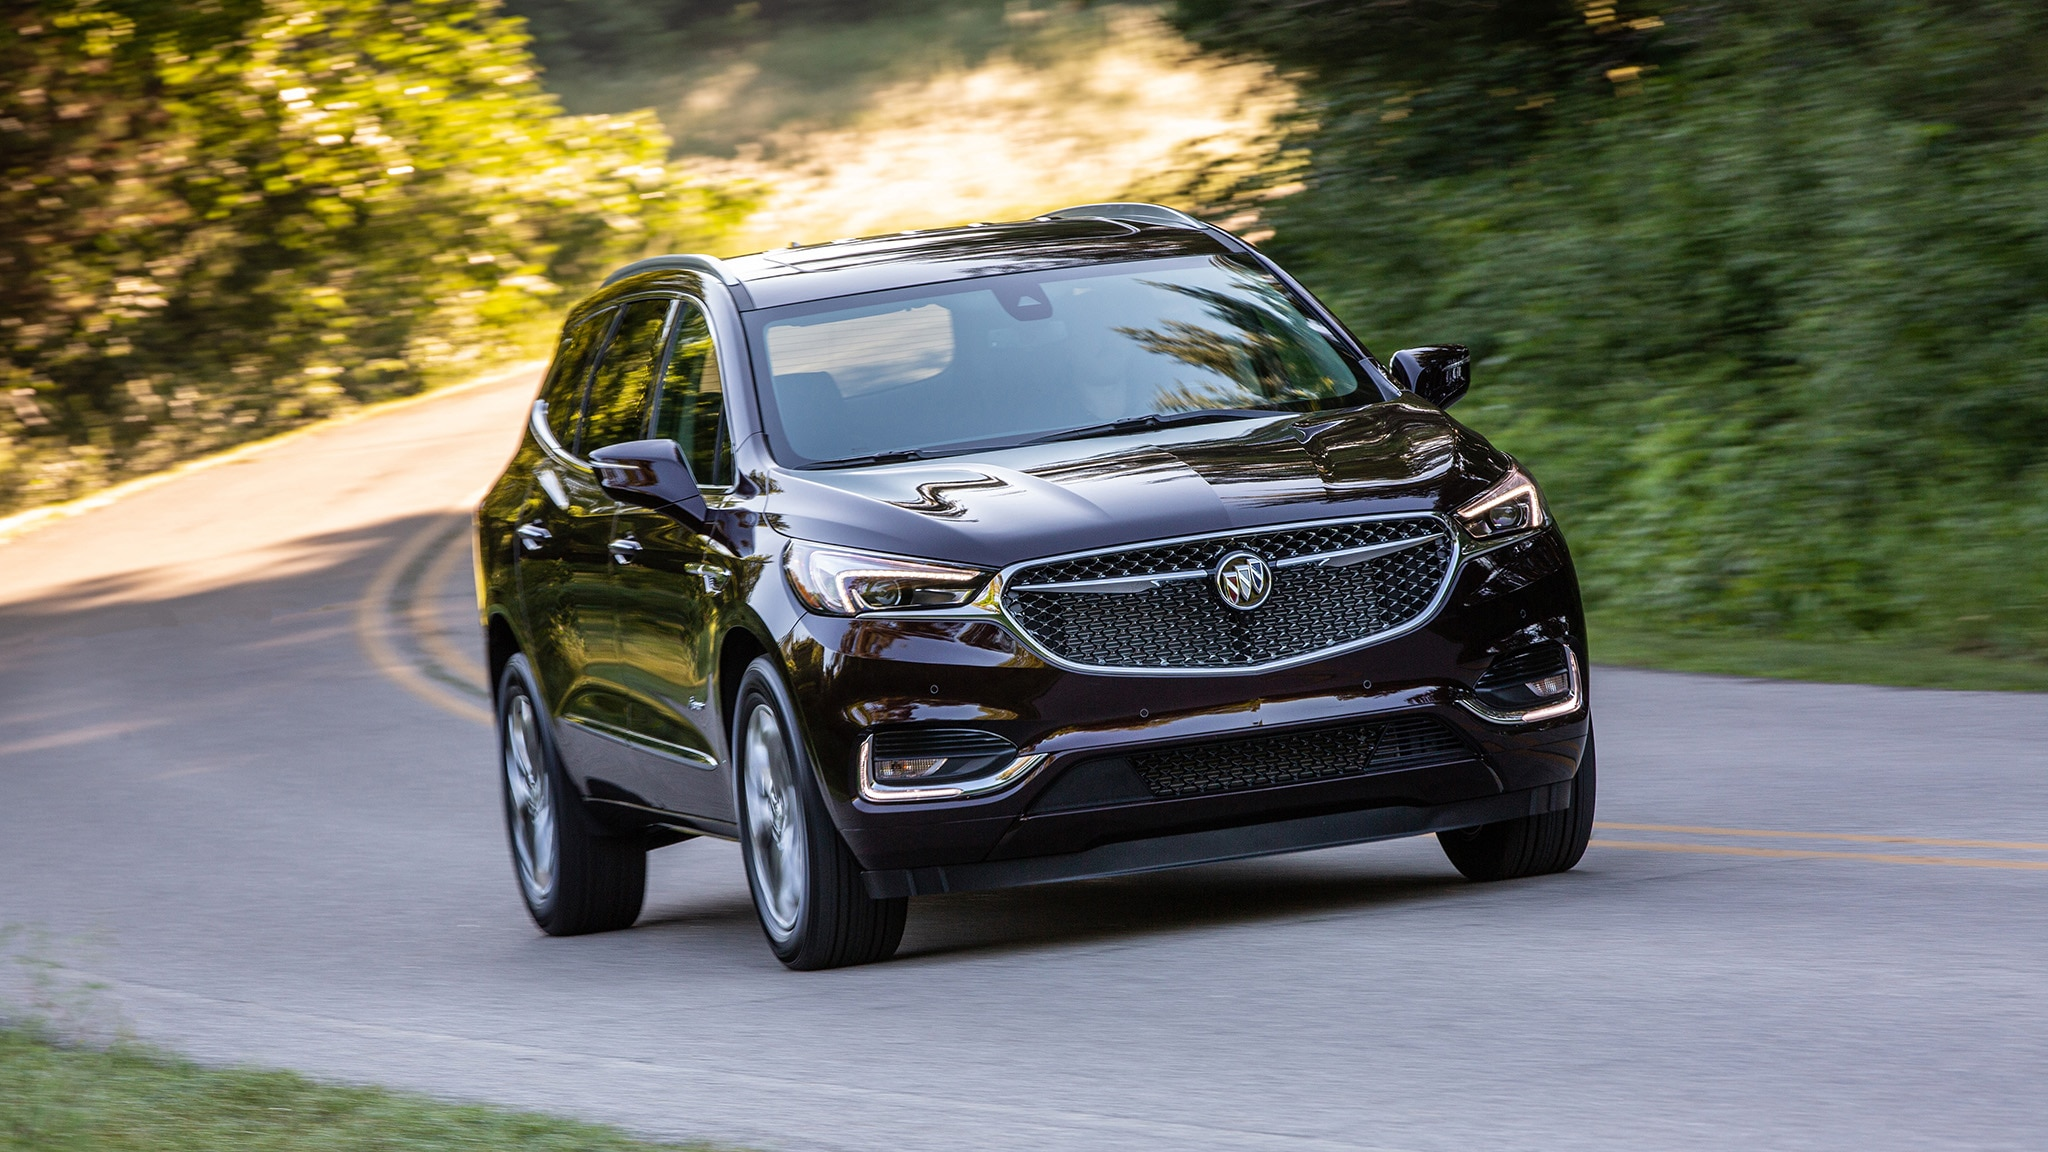 2019 New and Future Cars: 2020 Buick Enspire | Automobile Magazine